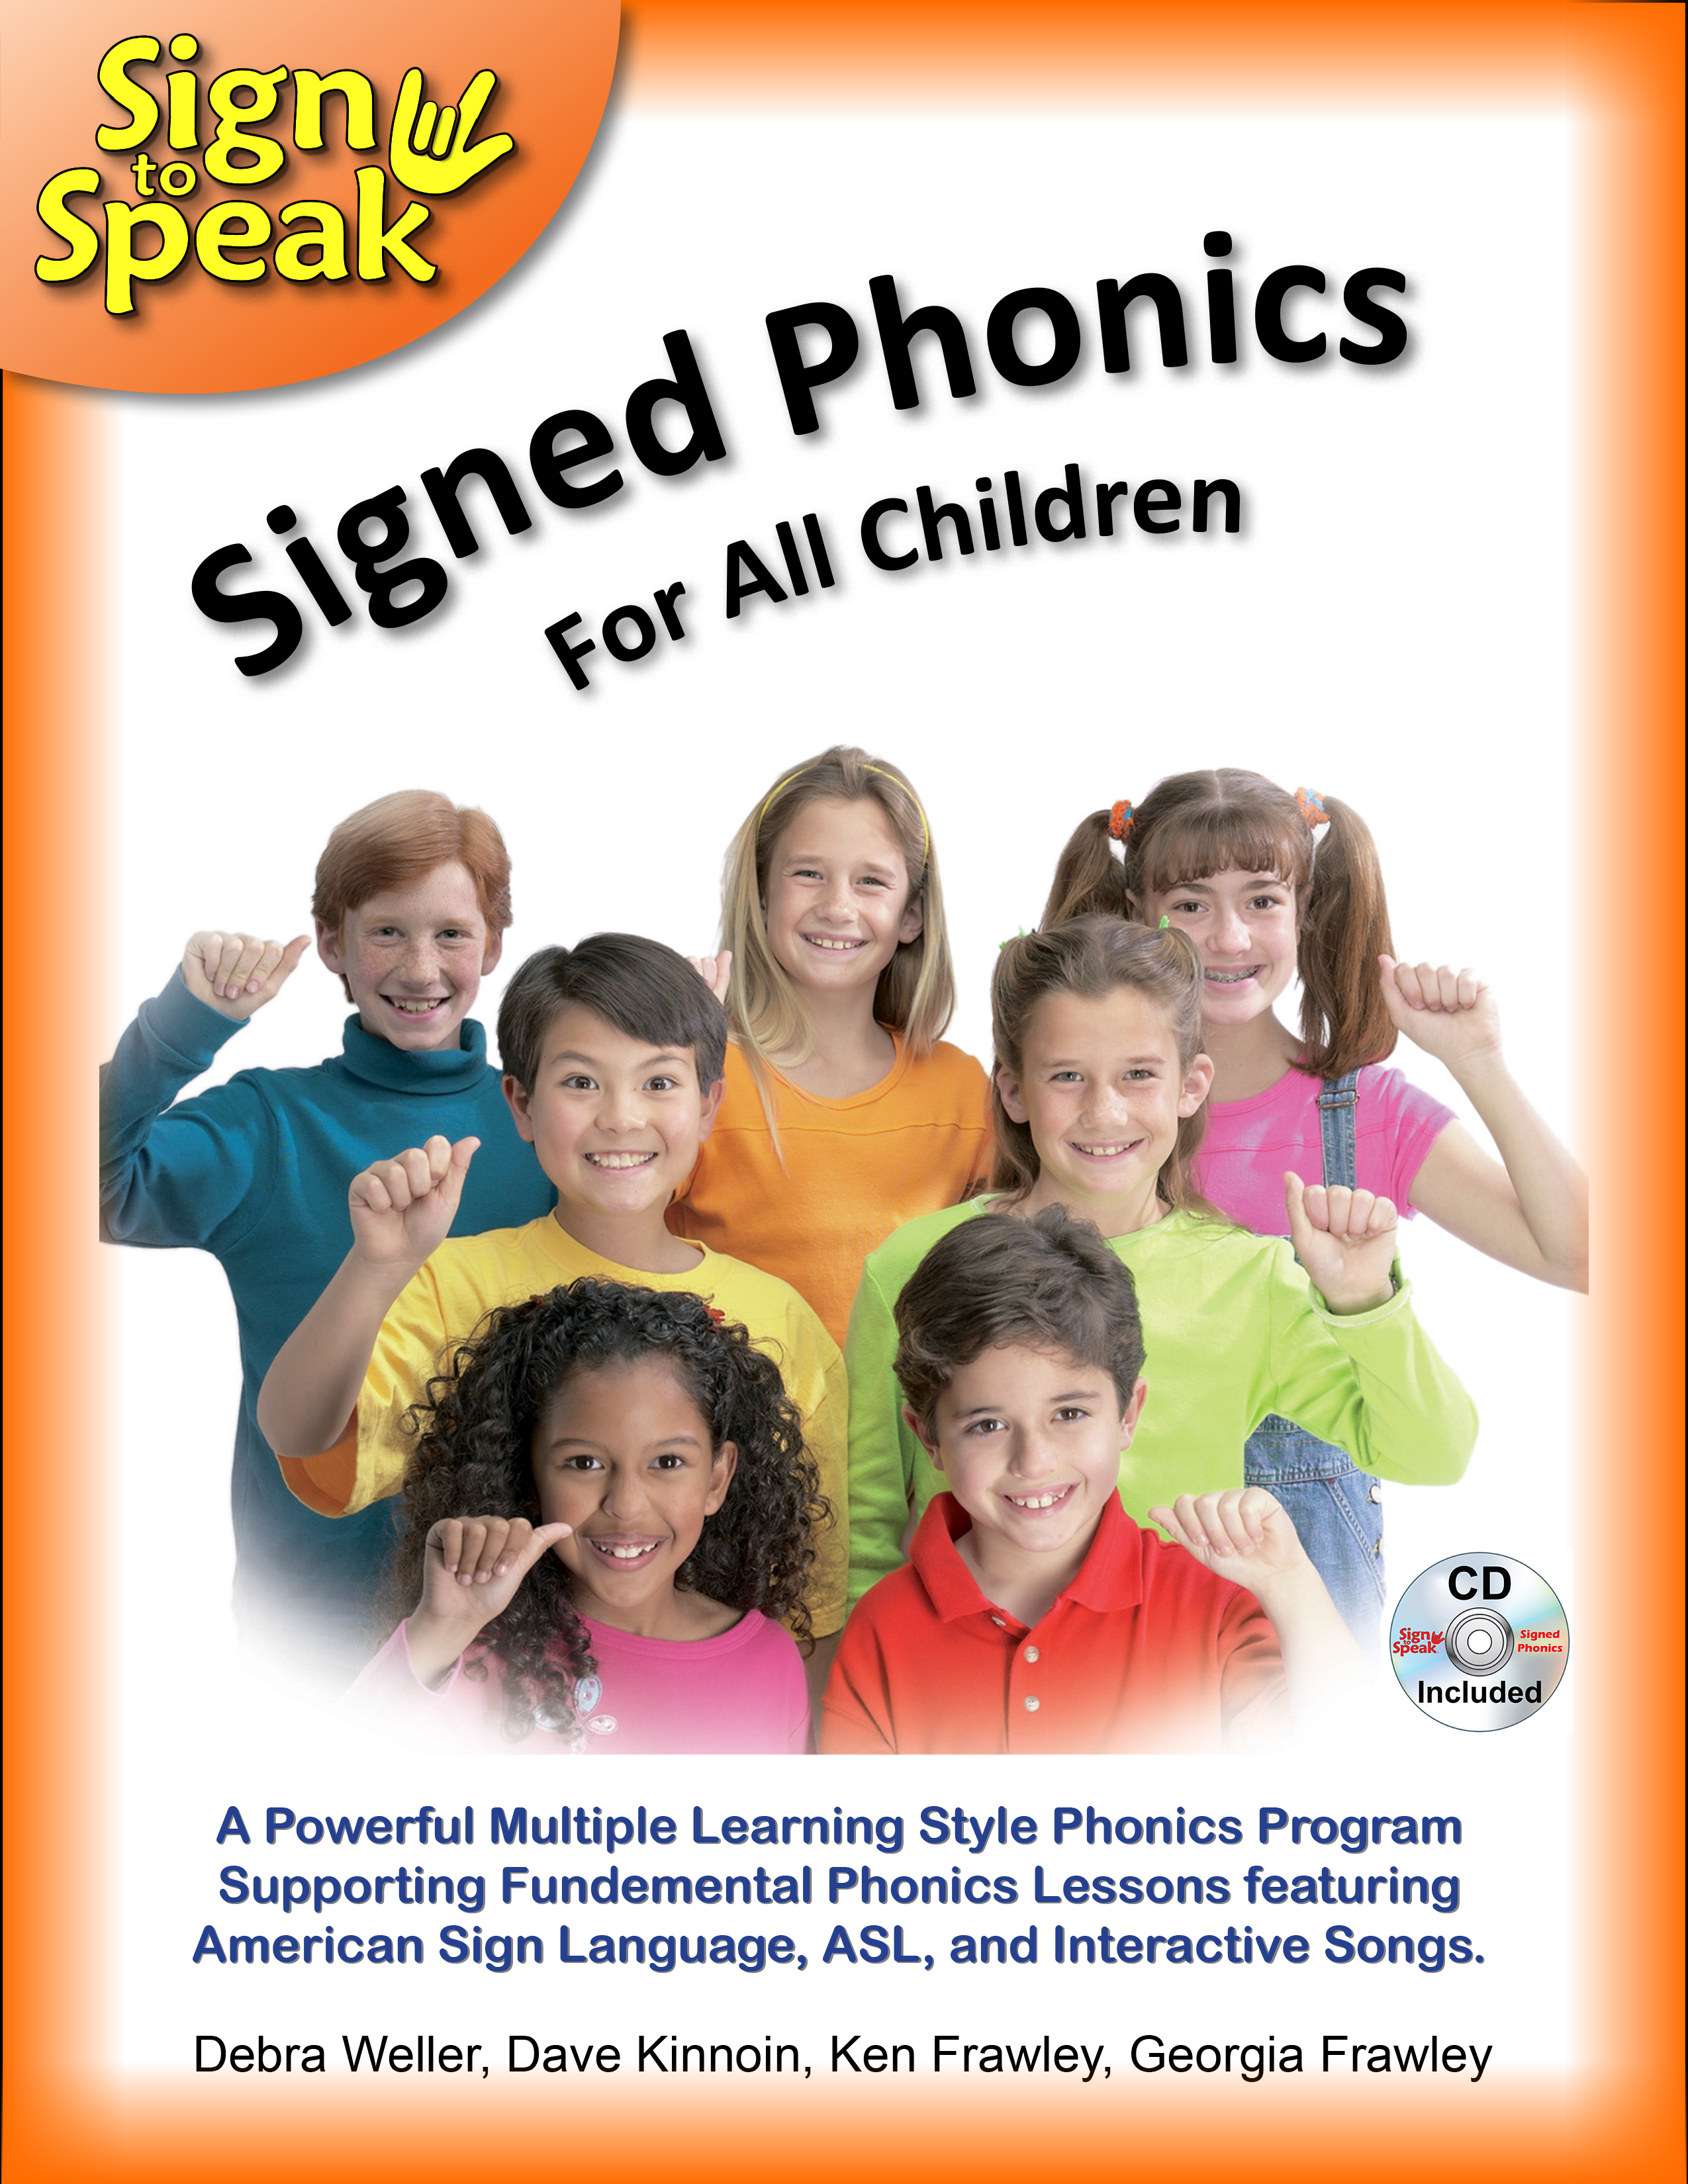 Phonics Instruction Supported By American Sign Language And Songs